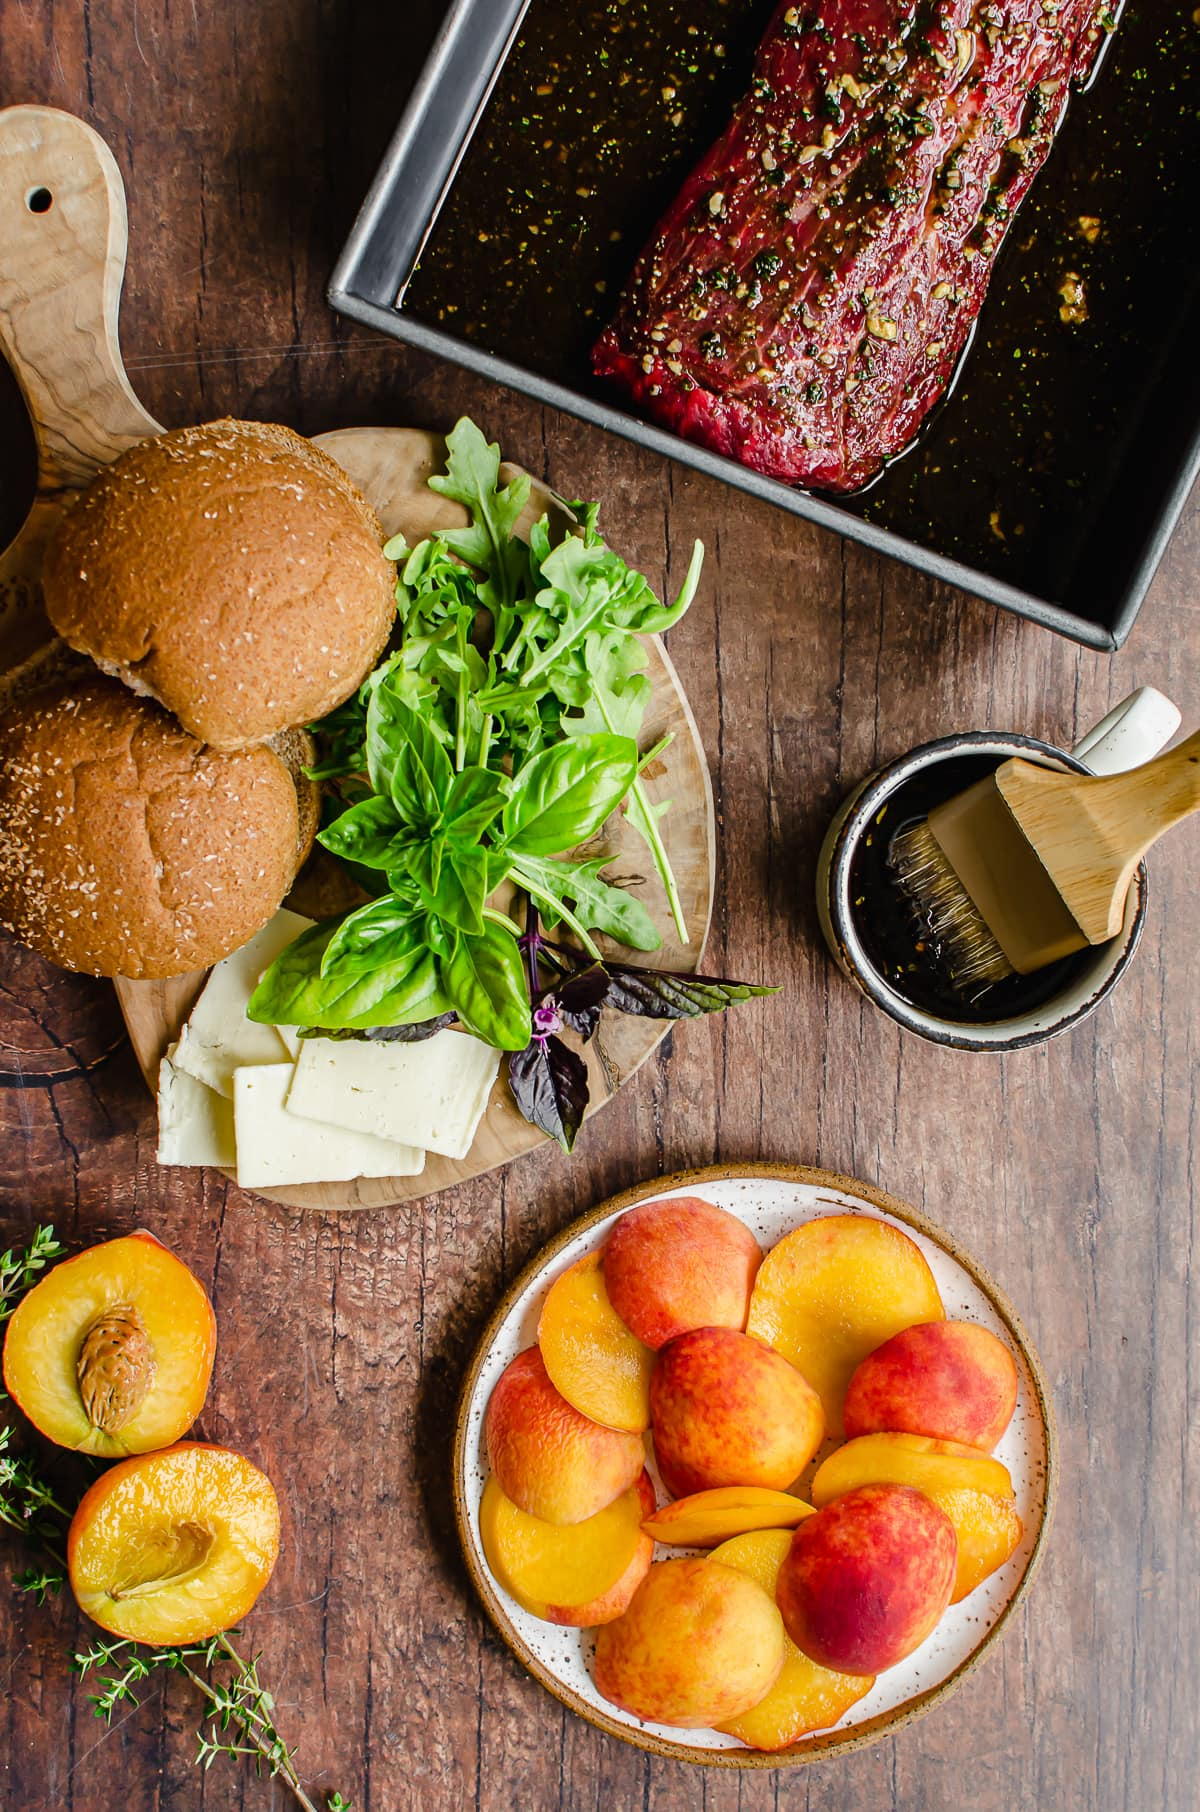 Measured ingredients for grilled steak sandwiches with peaches on a wood background.